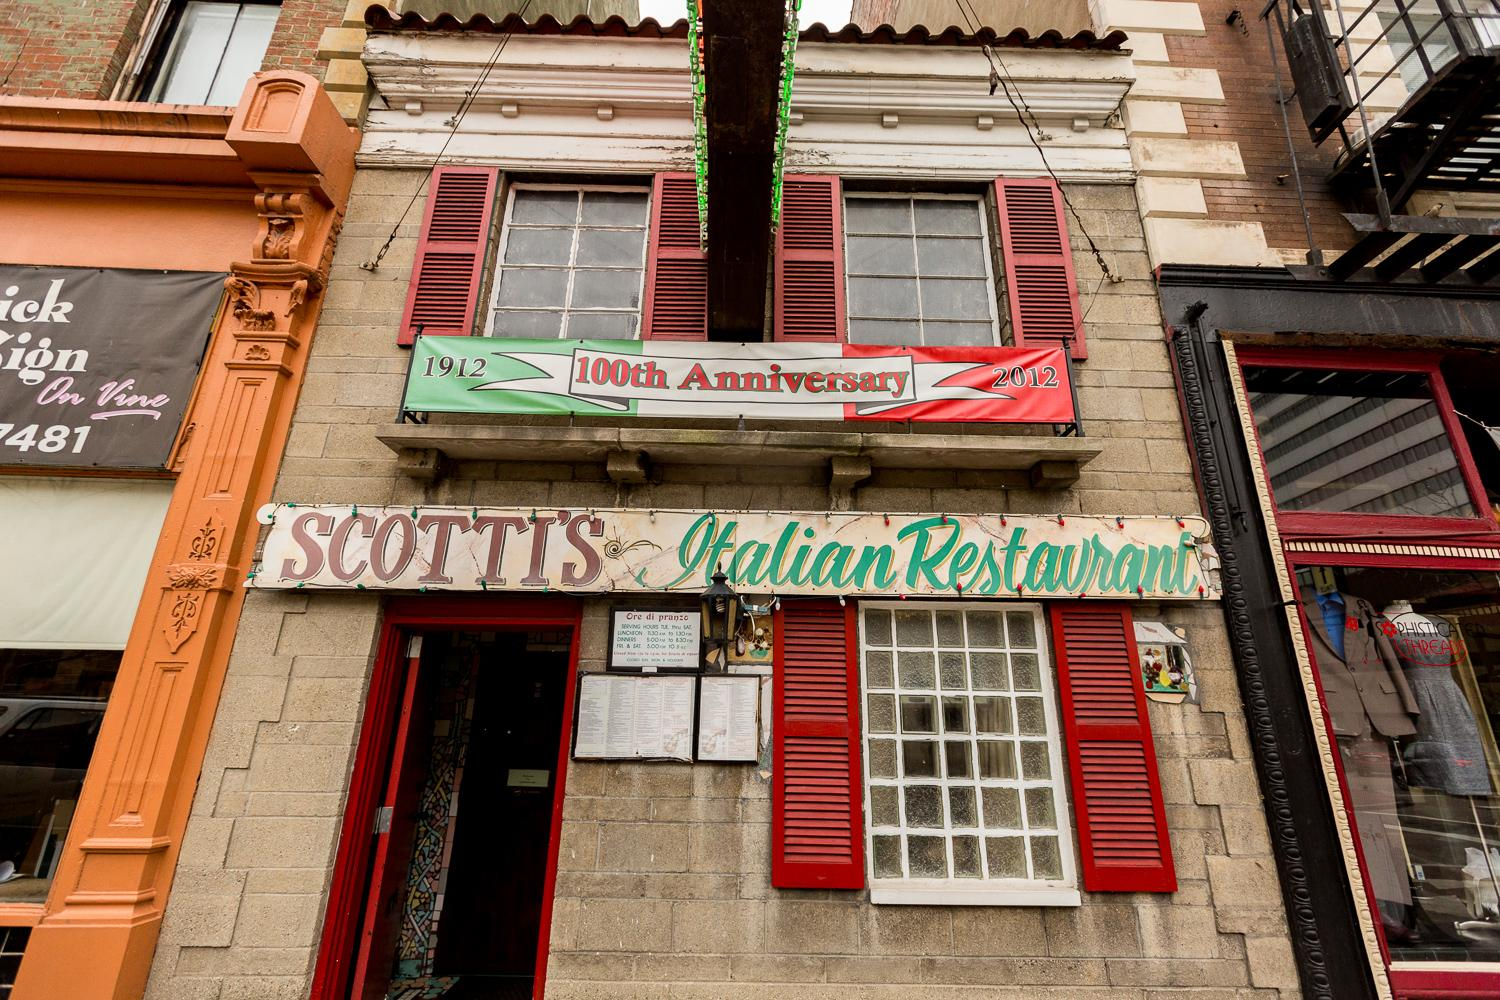 Scotti's Italian Restaurant, one of the oldest eateries in Cincinnati, has been combining traditional Italian flavor and classic Cincy flare for over 100 years. Scotti's is located in Downtown Cincinnati at 919 Vine Street (45202). / Image: Daniel Smyth Photography